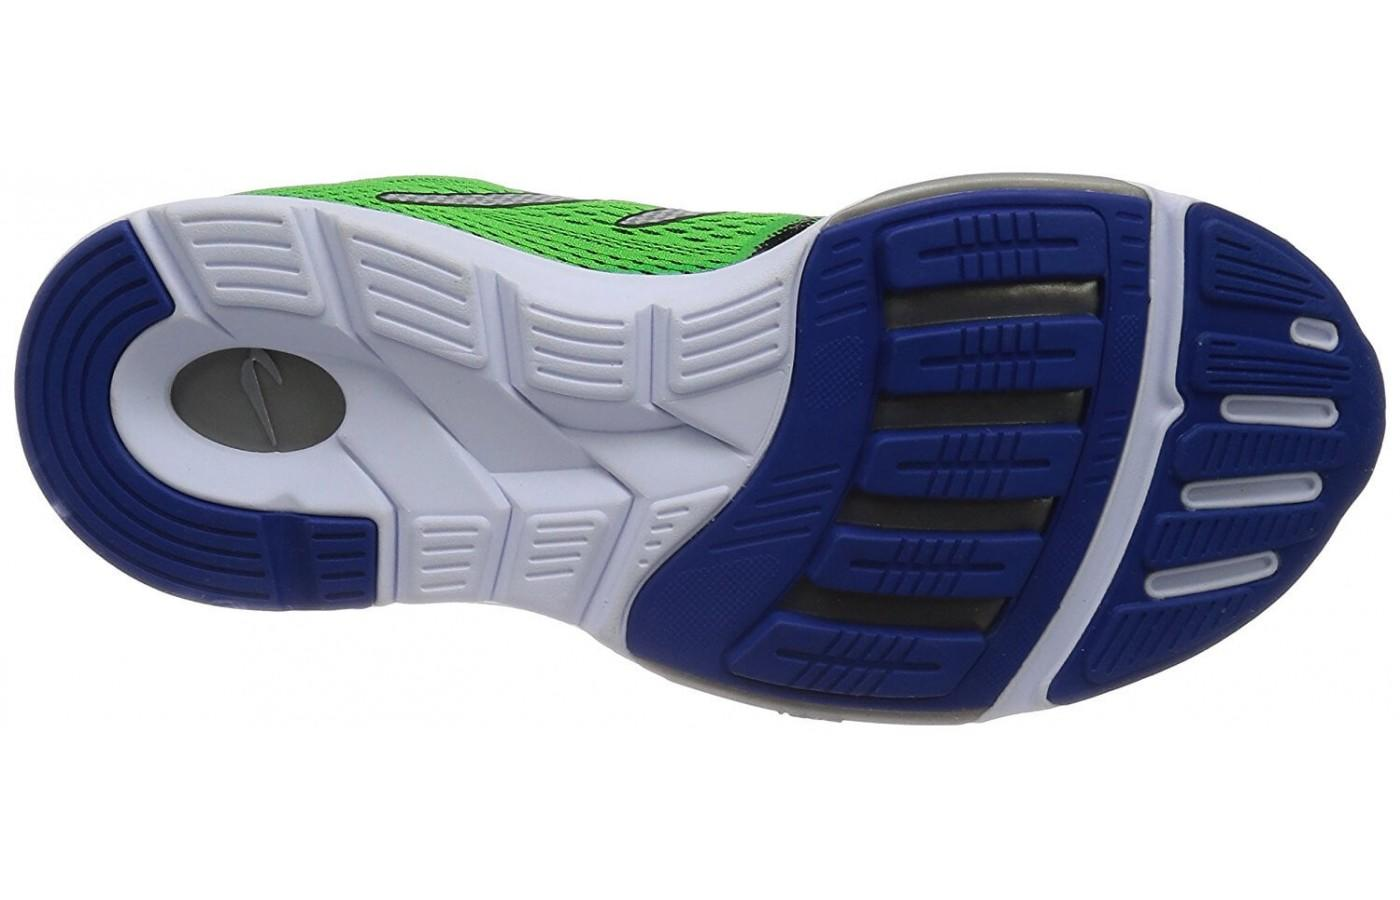 The unique outsole provides maximum responsiveness and grip.